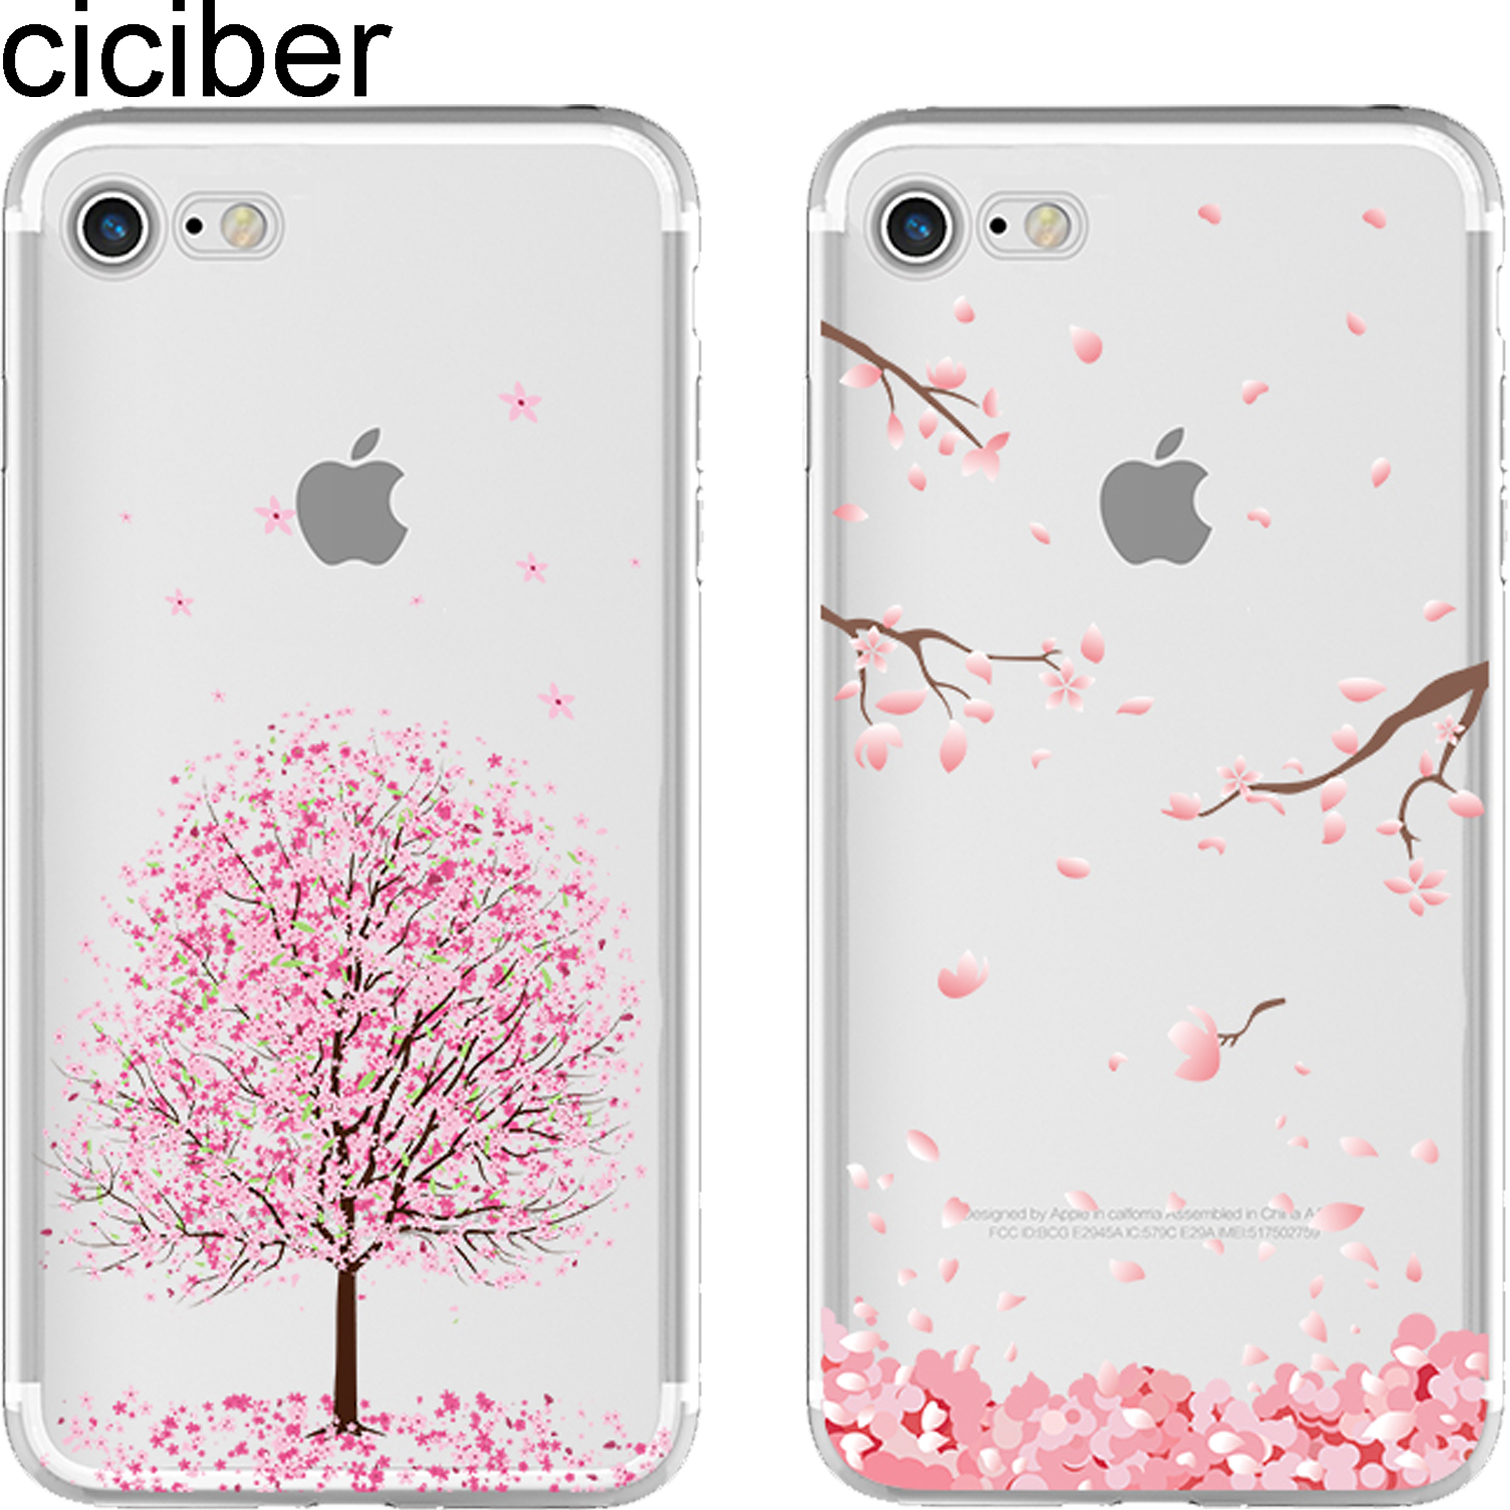 ciciber Romantic Sweet Cherry Blossom Cat Soft TPU Funda para teléfono para iPhone 11 Pro Max 6 6S 7 8 Plus 5S SE X XR XS Max Funda